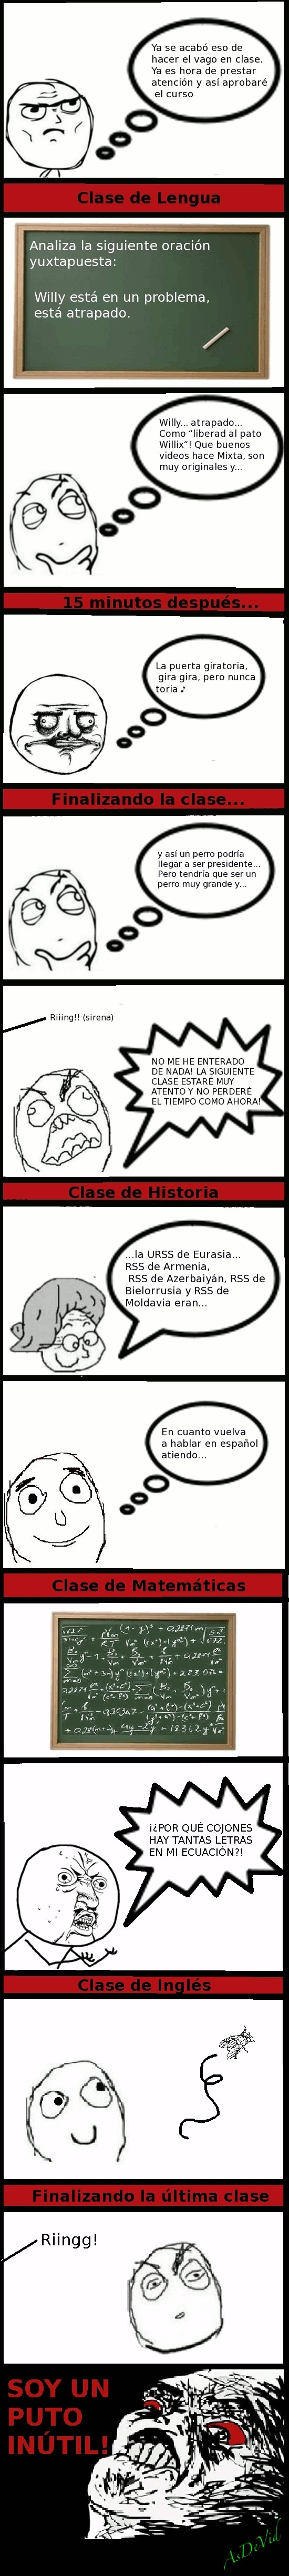 atender,clases,imposible,inútil